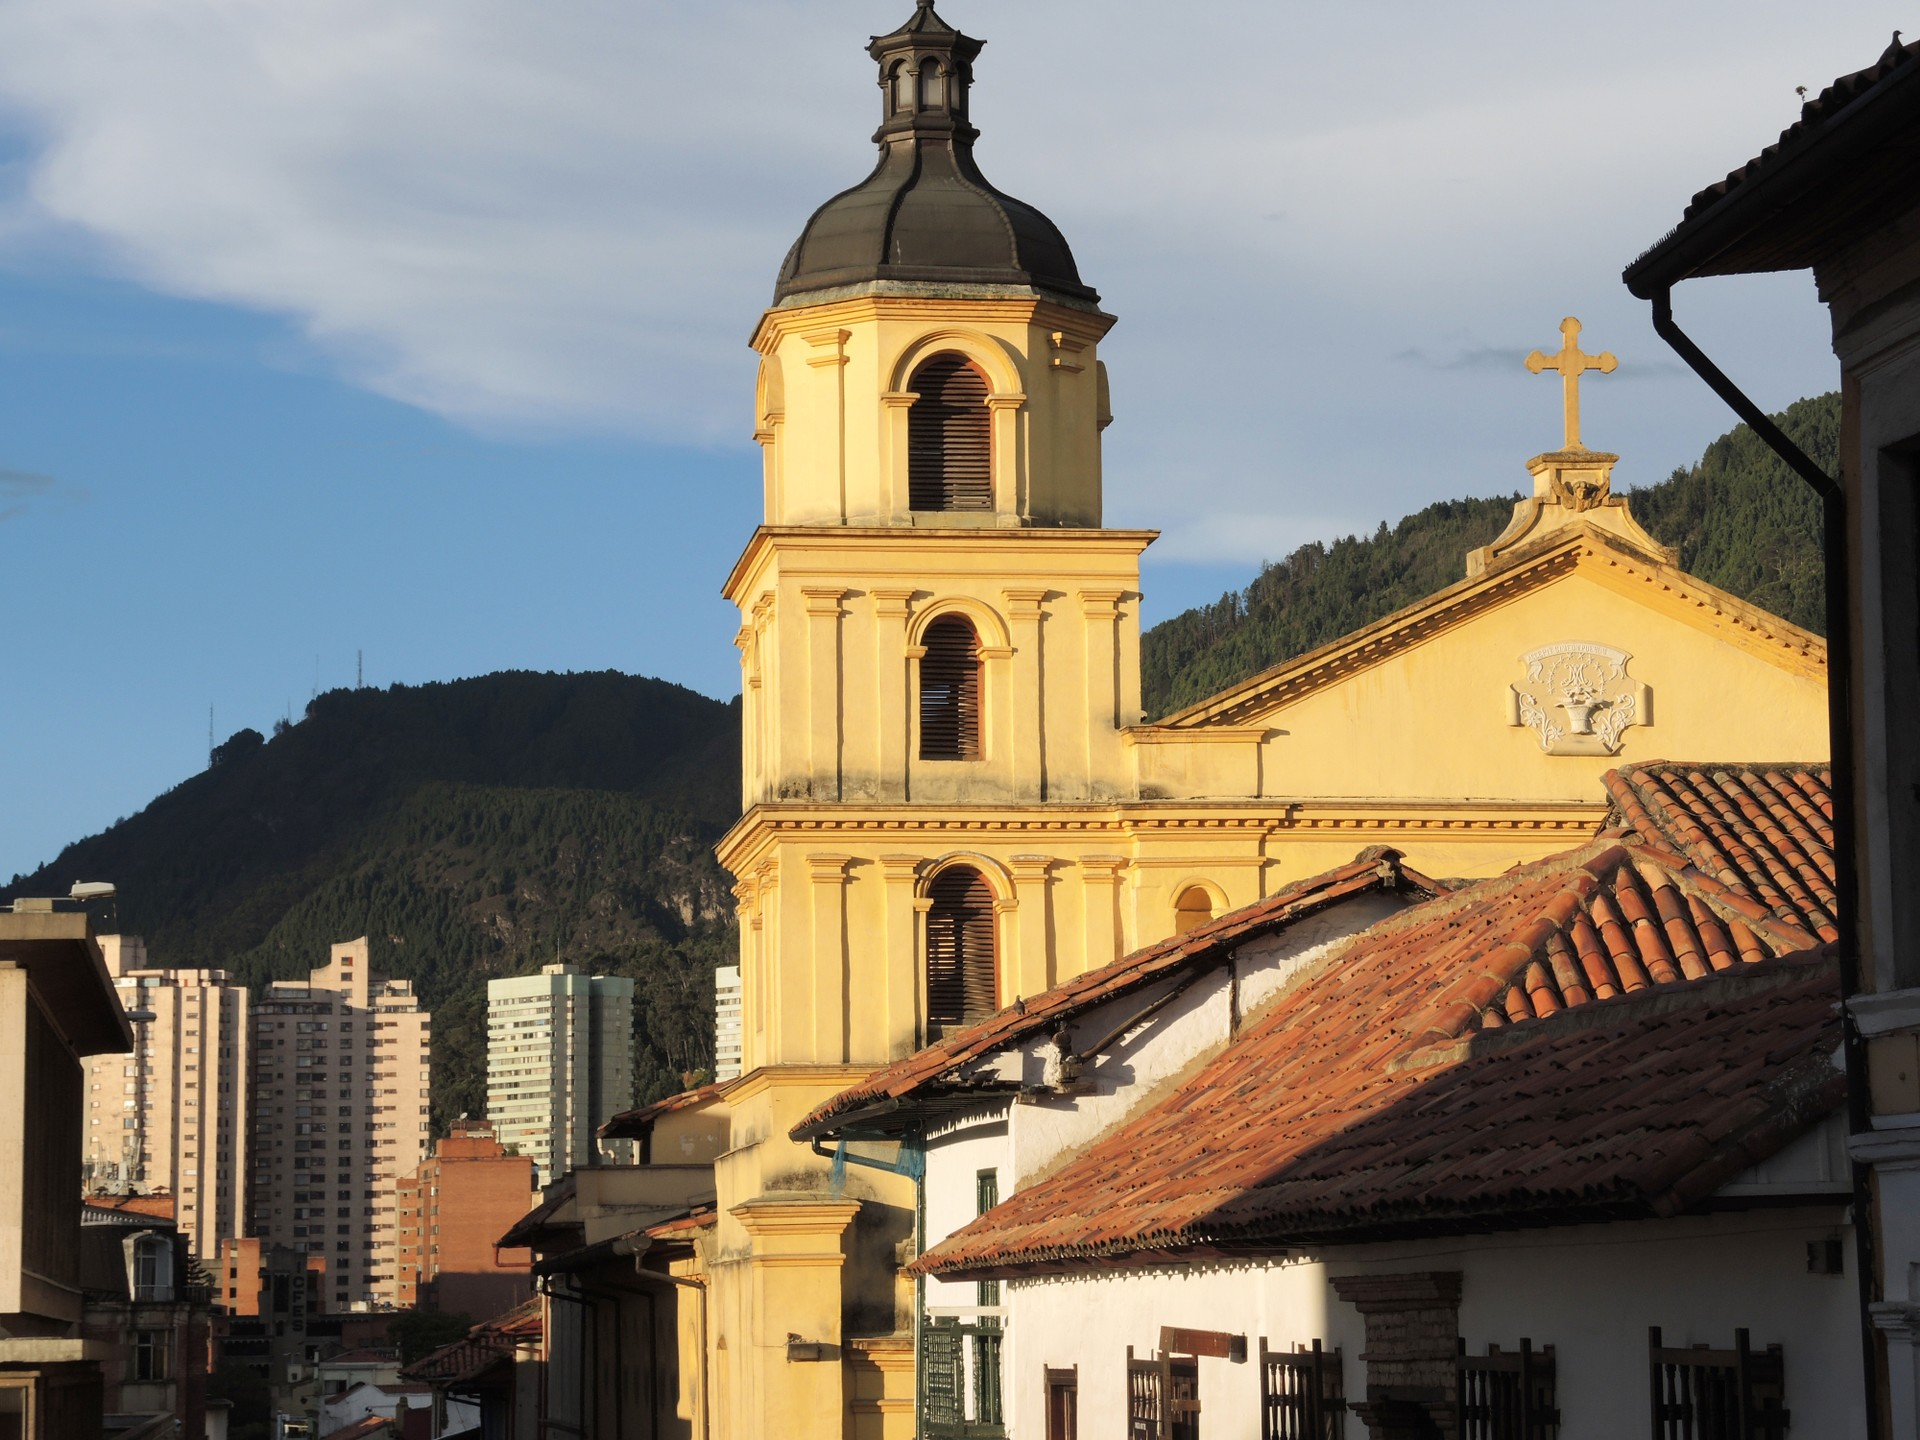 Bogotá is the capital city of Colombia